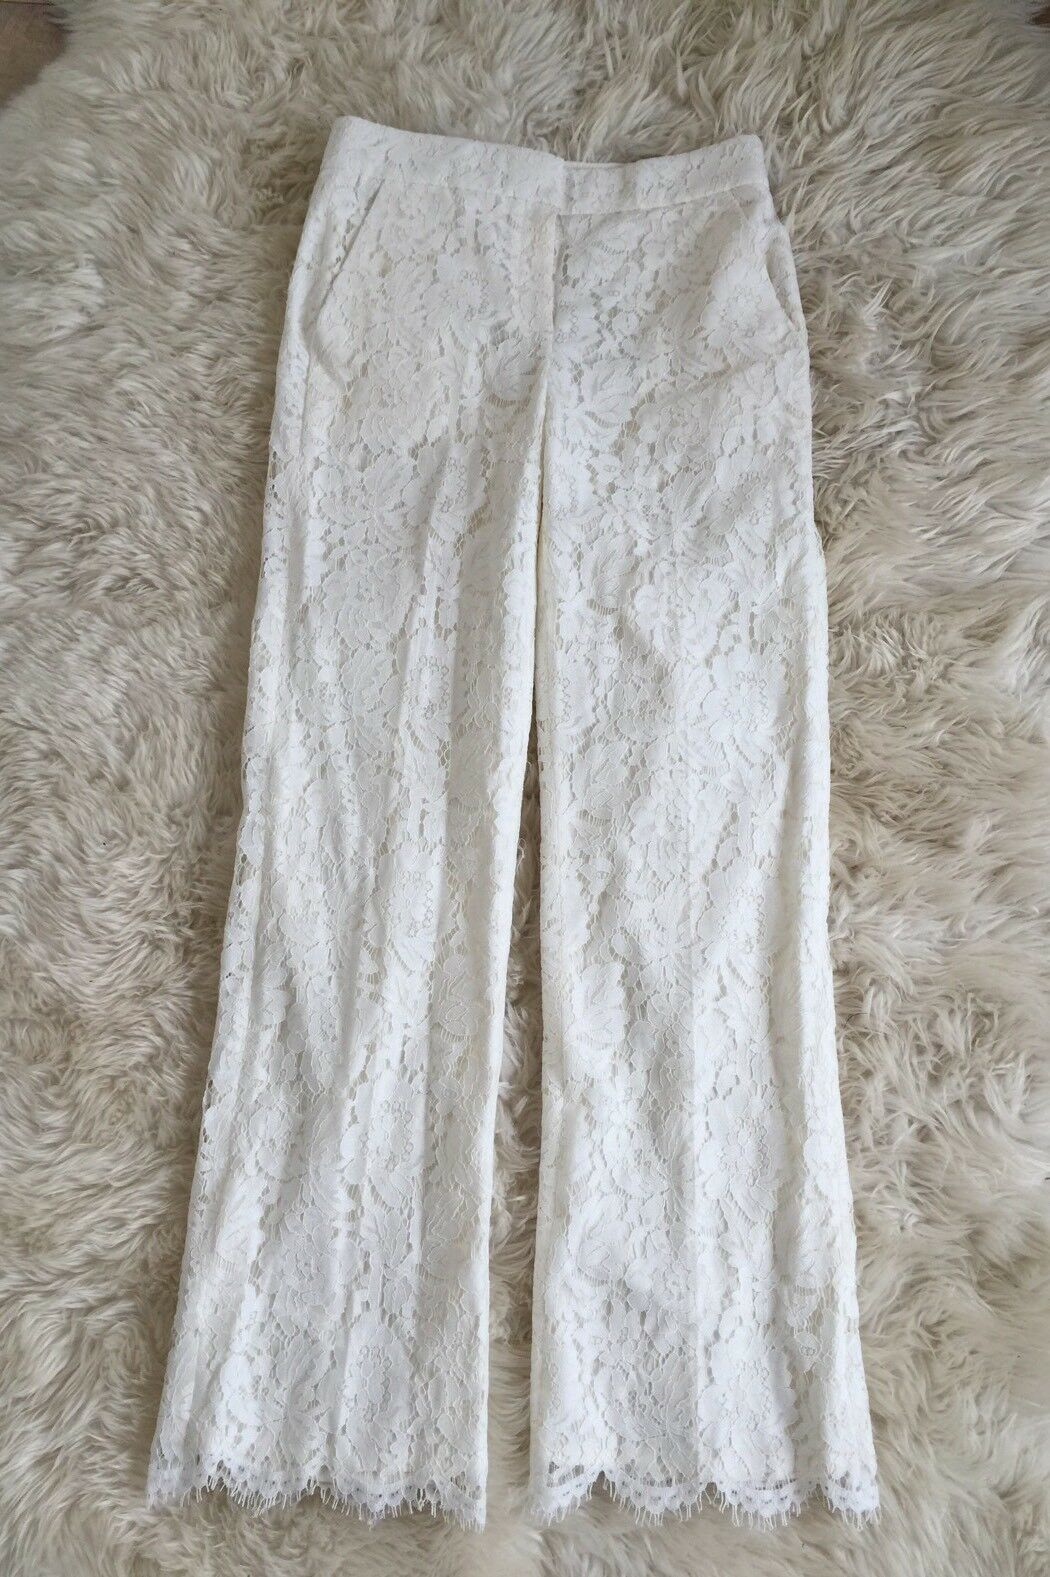 JCrew  350 Collection Floral Lace Pants Wedding Bride Formal Ivory 4 C7611 NEW